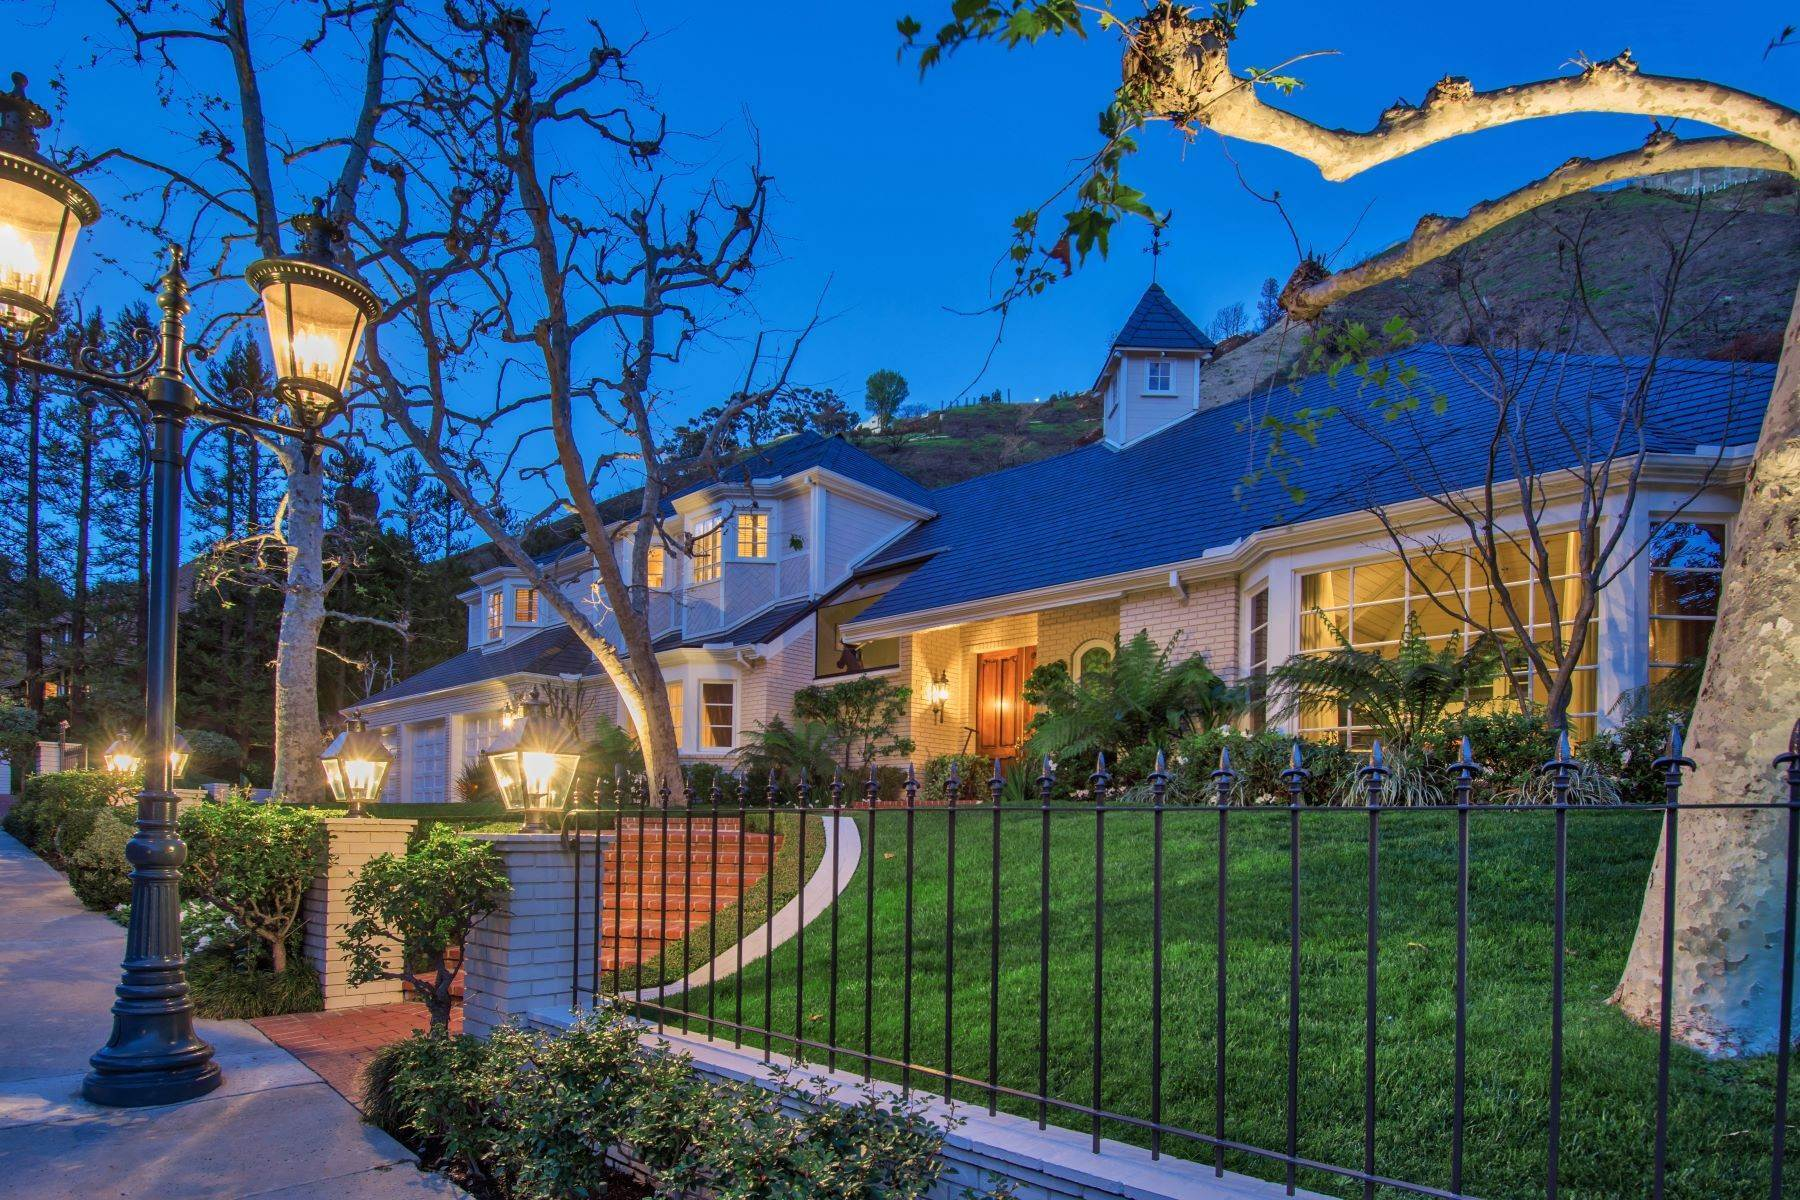 Single Family Homes for Active at Rare Opportunity in Moraga Estates 1432 Moraga Drive Los Angeles, California 90049 United States